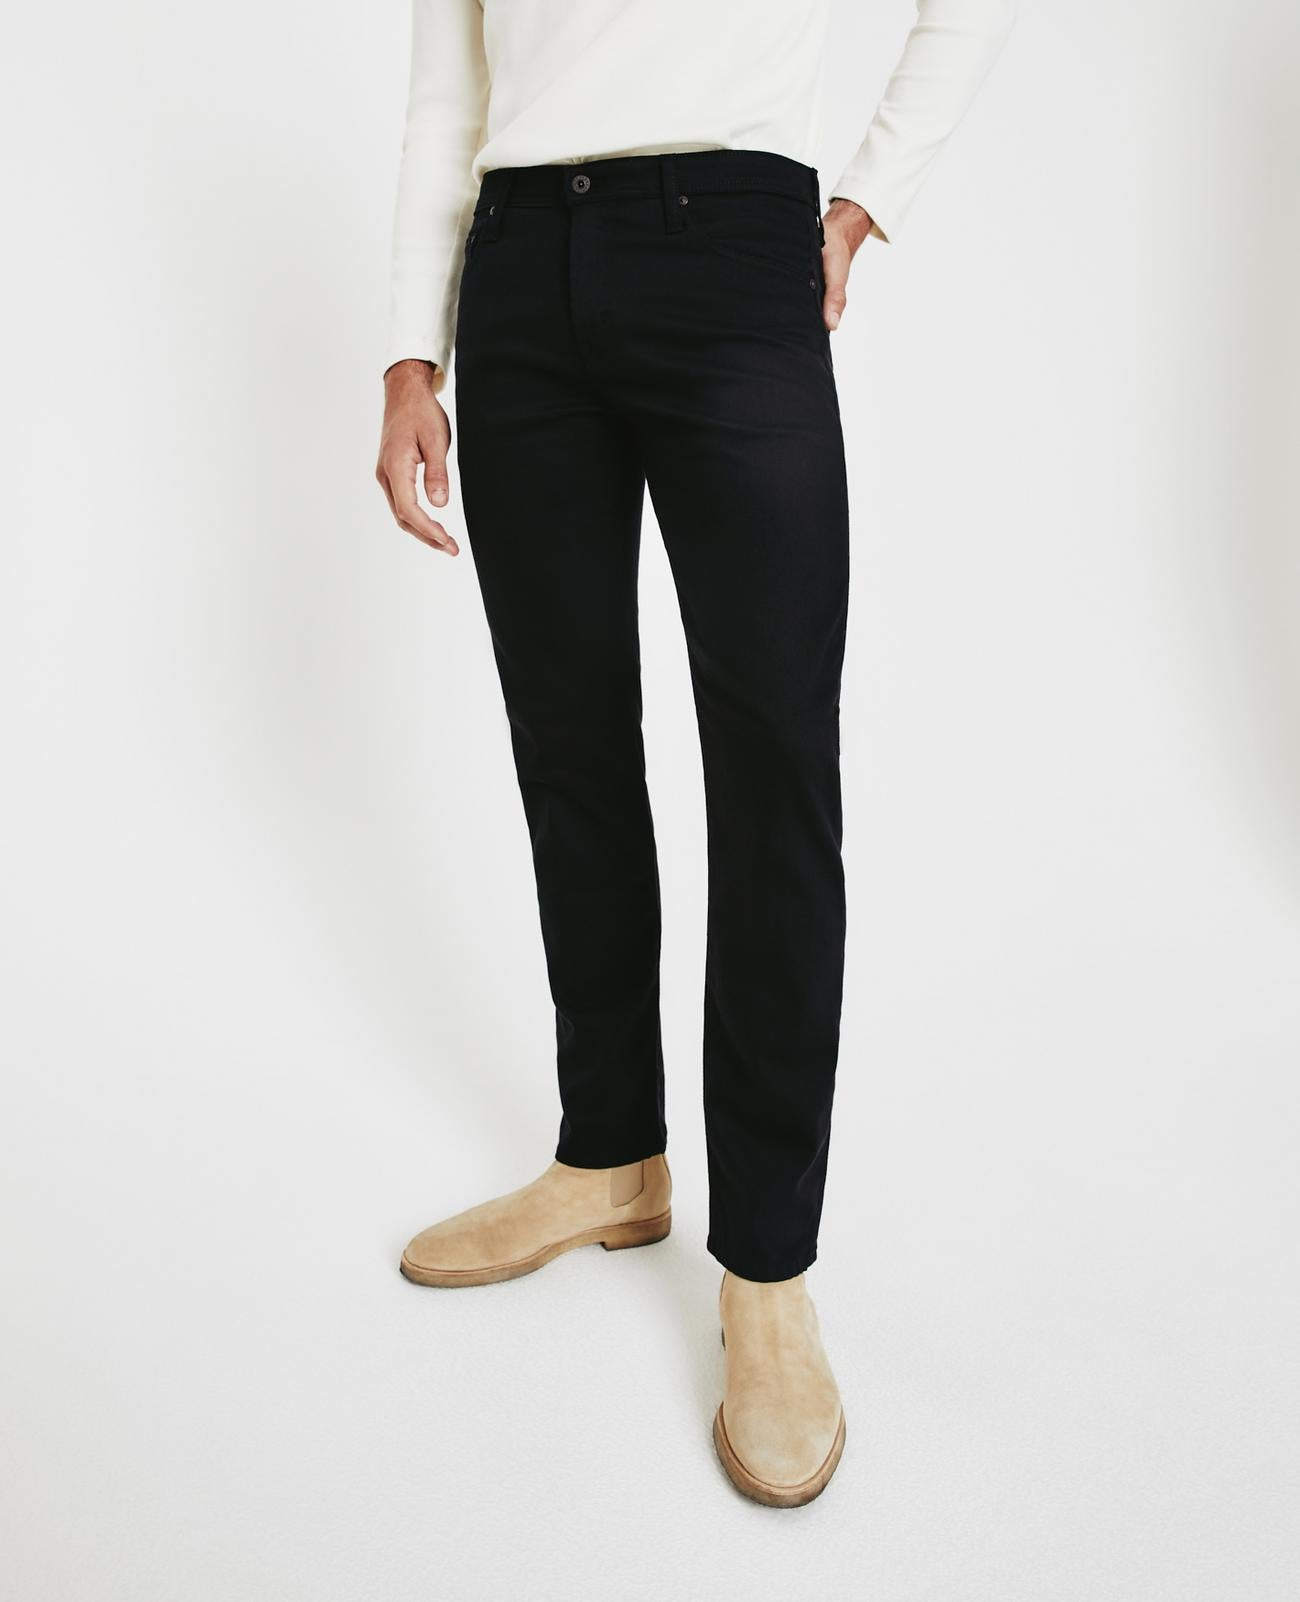 AG Jeans The Tellis Style #: 1783DSDSB FATHOM